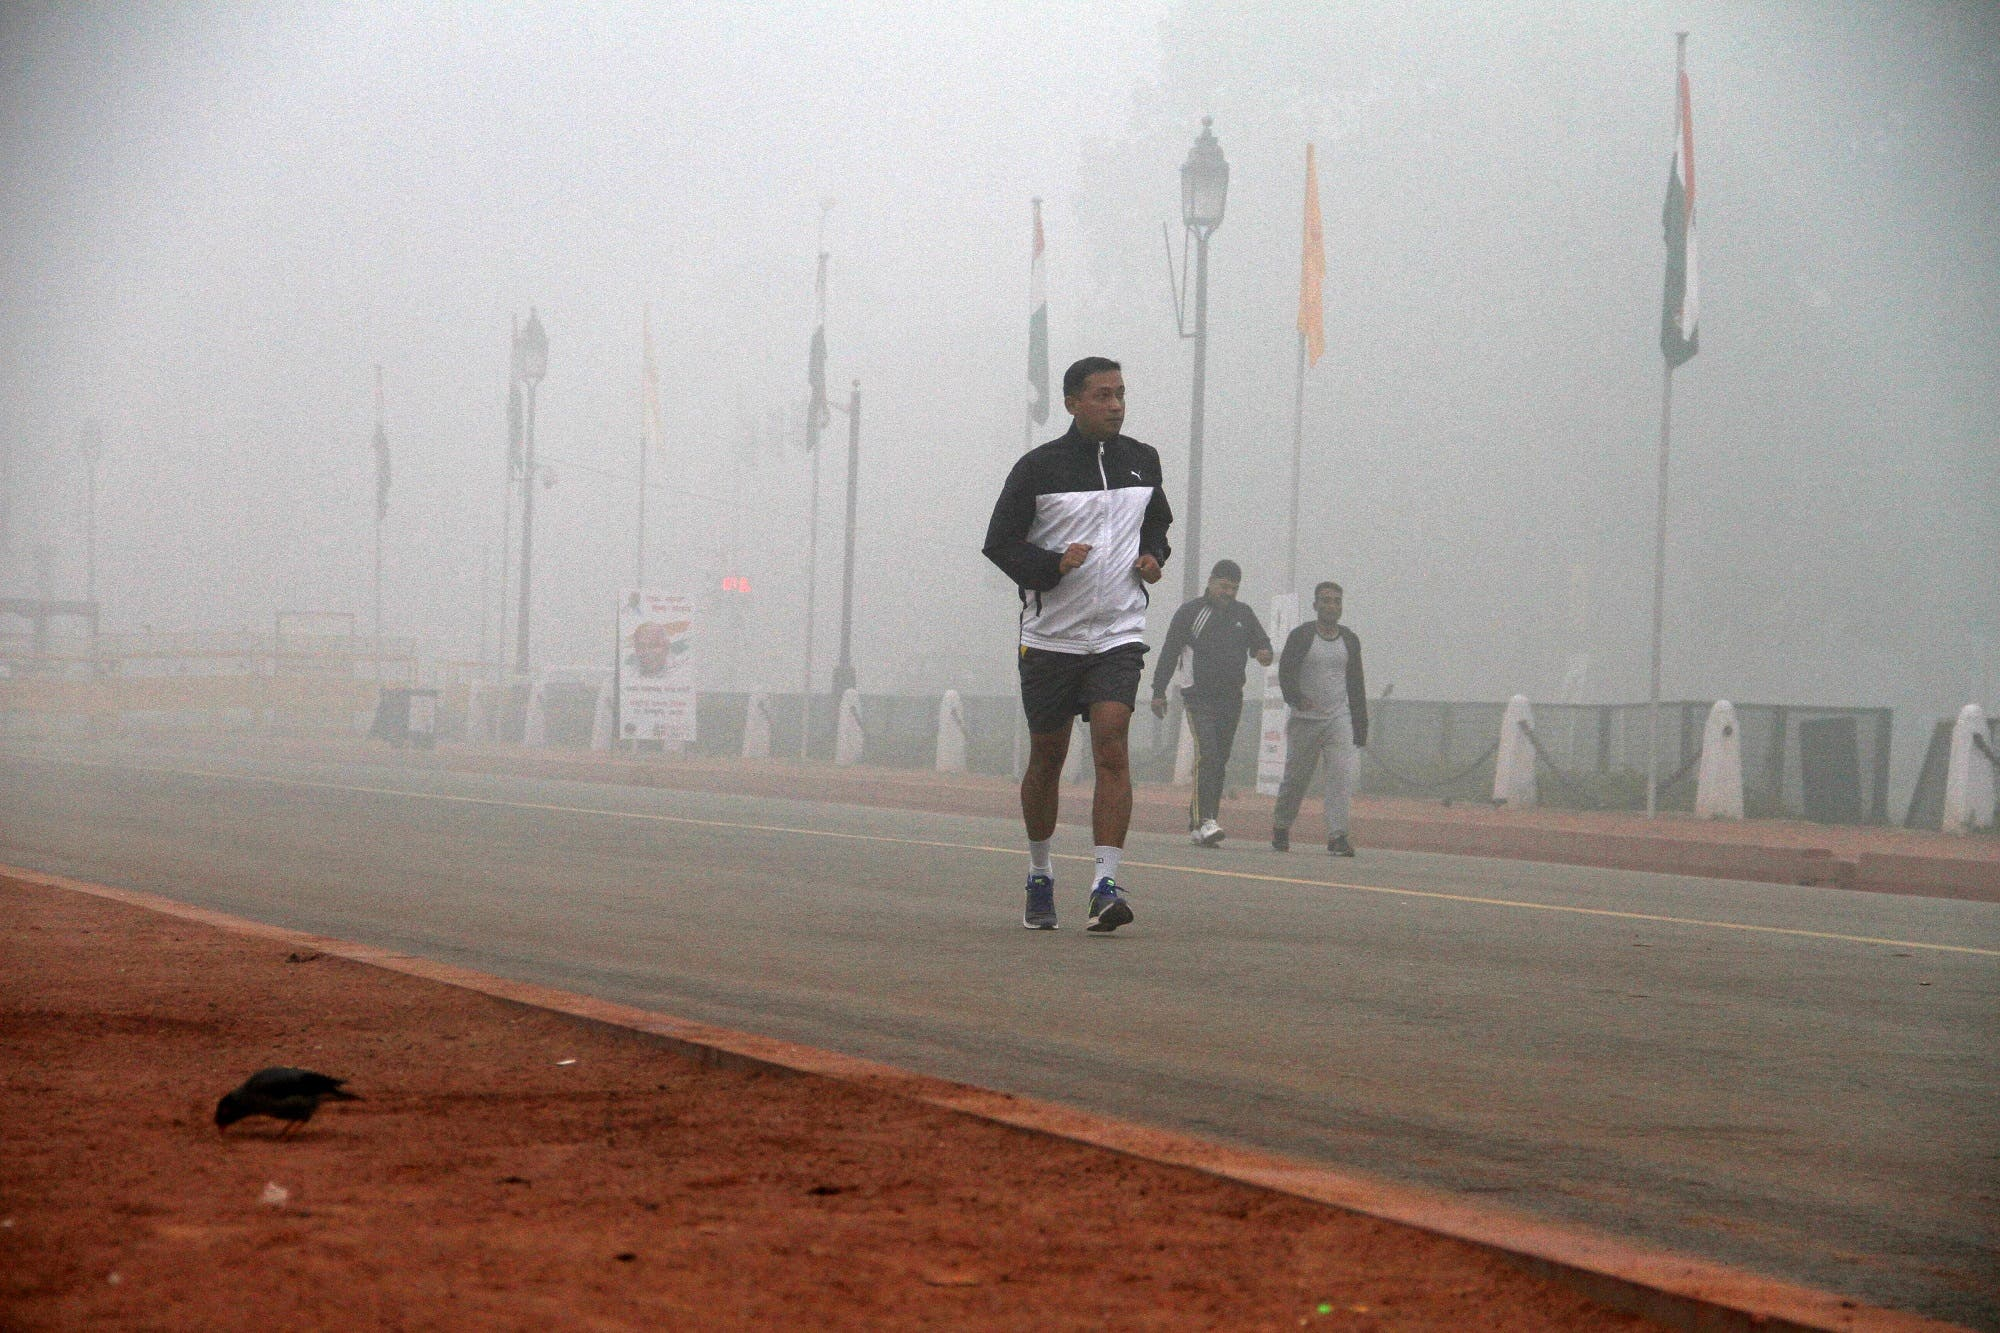 Bad air quality has also forced some diplomats to move their positions. (Supplied)